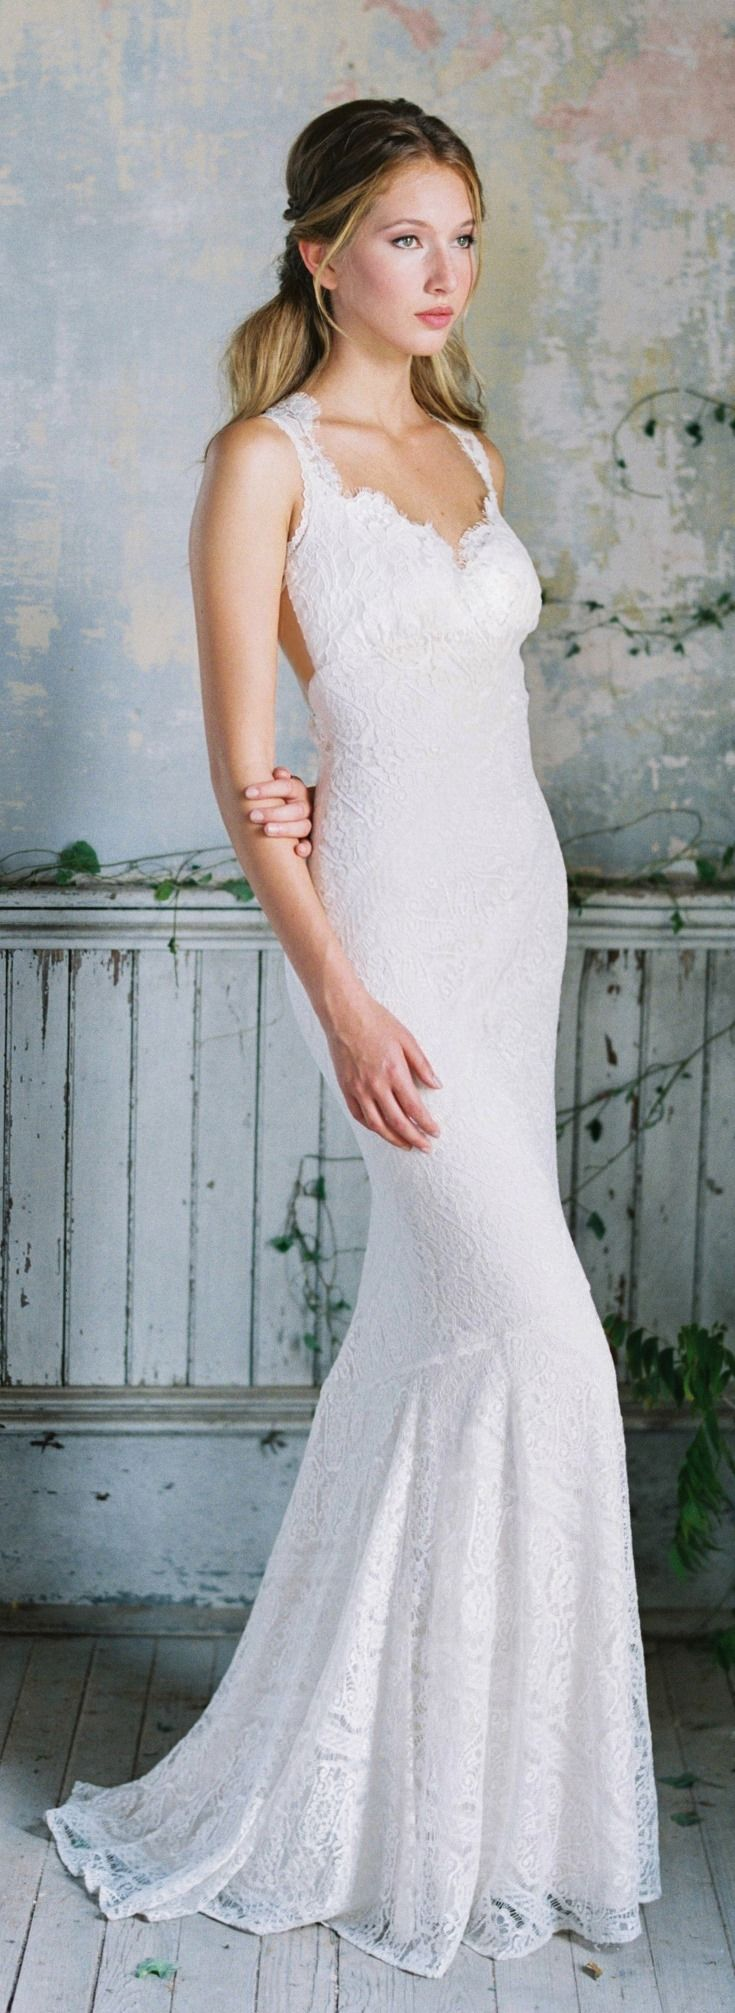 336 best ROMANTIQUE Wedding Dresses by Claire Pettibone images on ...